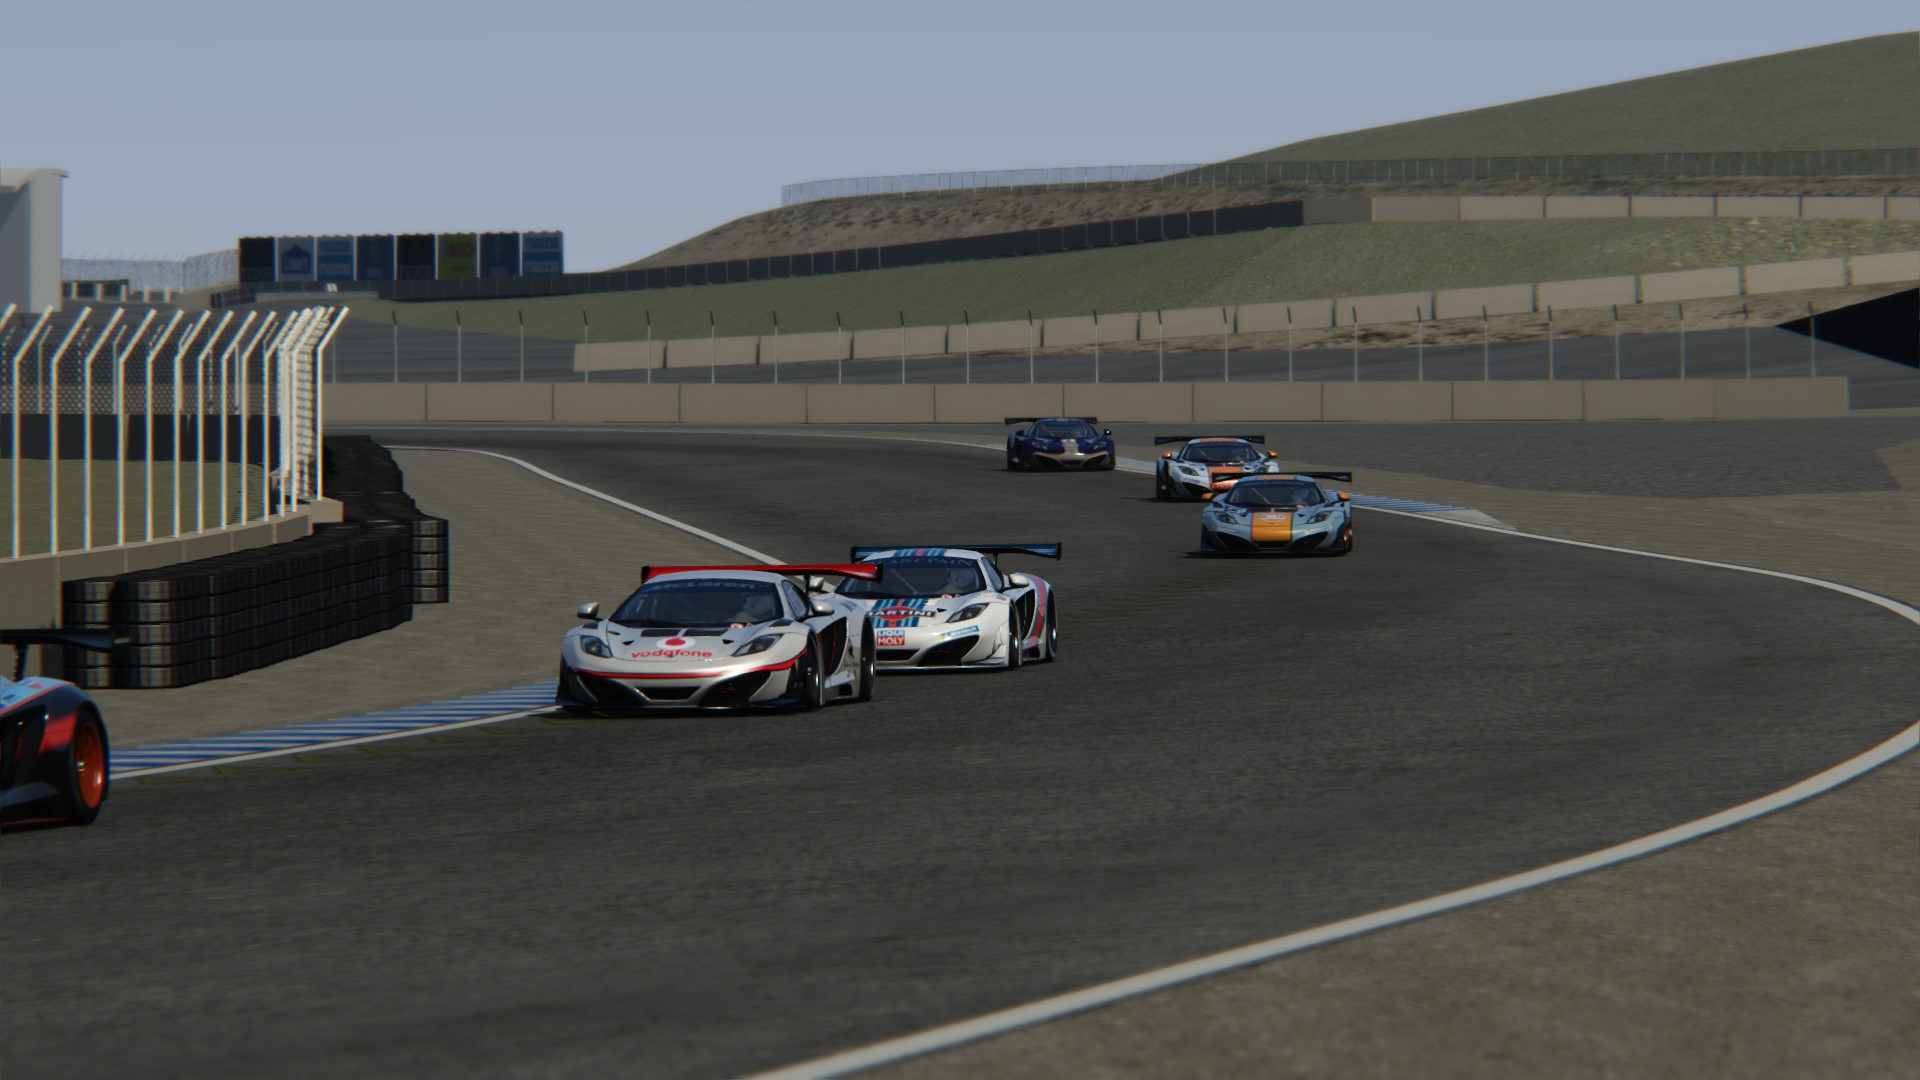 Screenshot_mclaren_mp412c_gt3_bs_lagunaseca_29-5-116-16-42-25.jpg